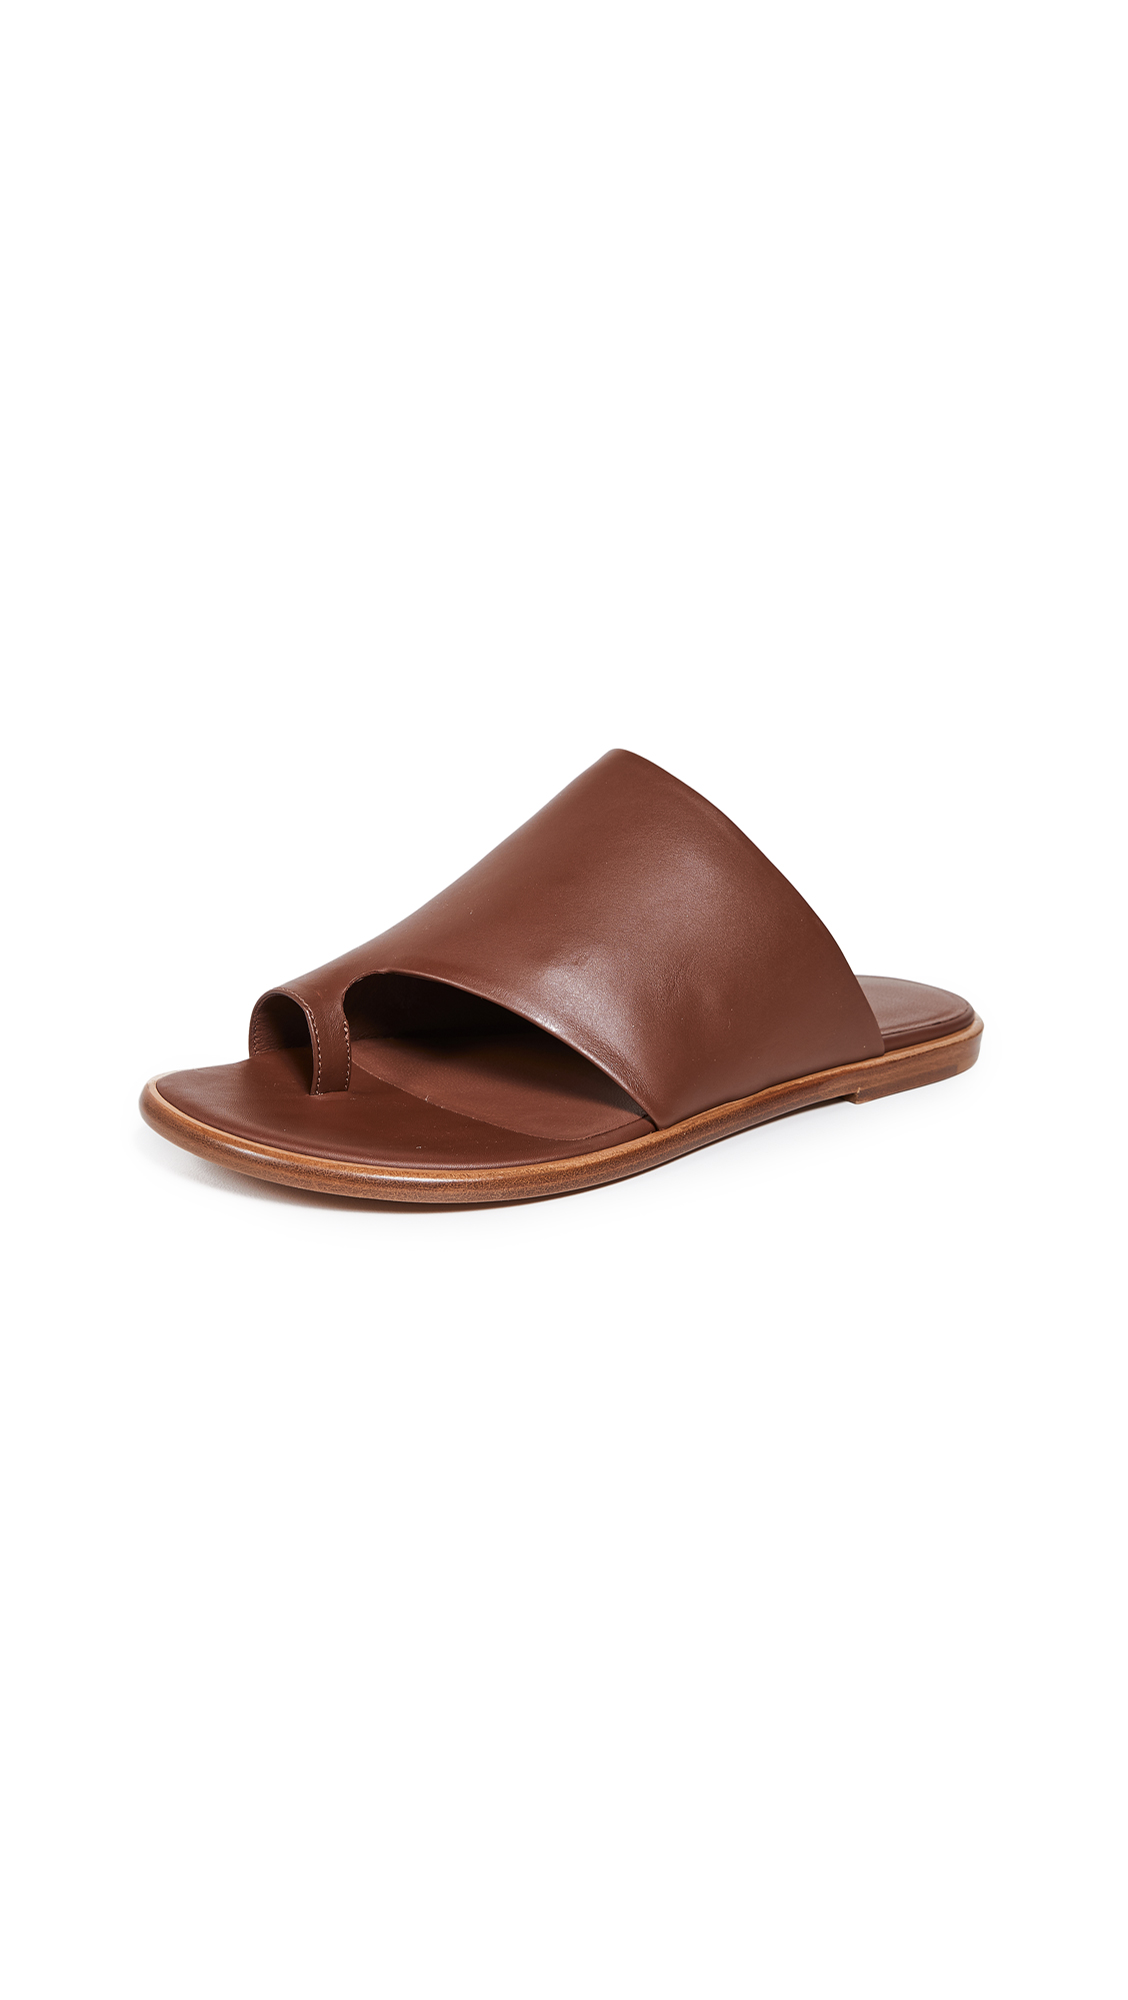 Vince Edris Toe Ring Slide Sandals - Cognac